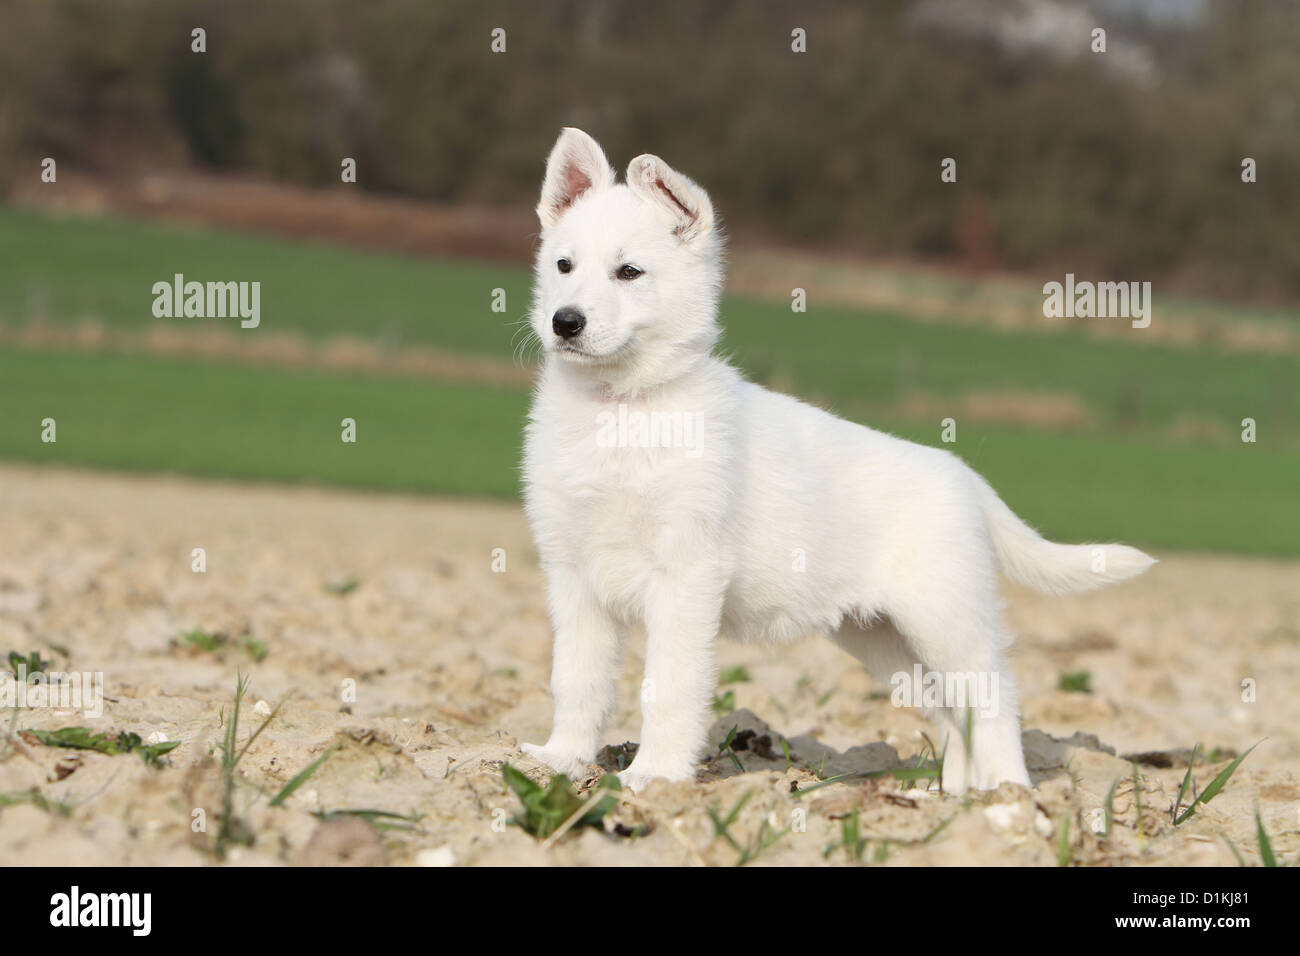 Berger Blanc Suisse Pup Stock Photos Berger Blanc Suisse Pup Stock